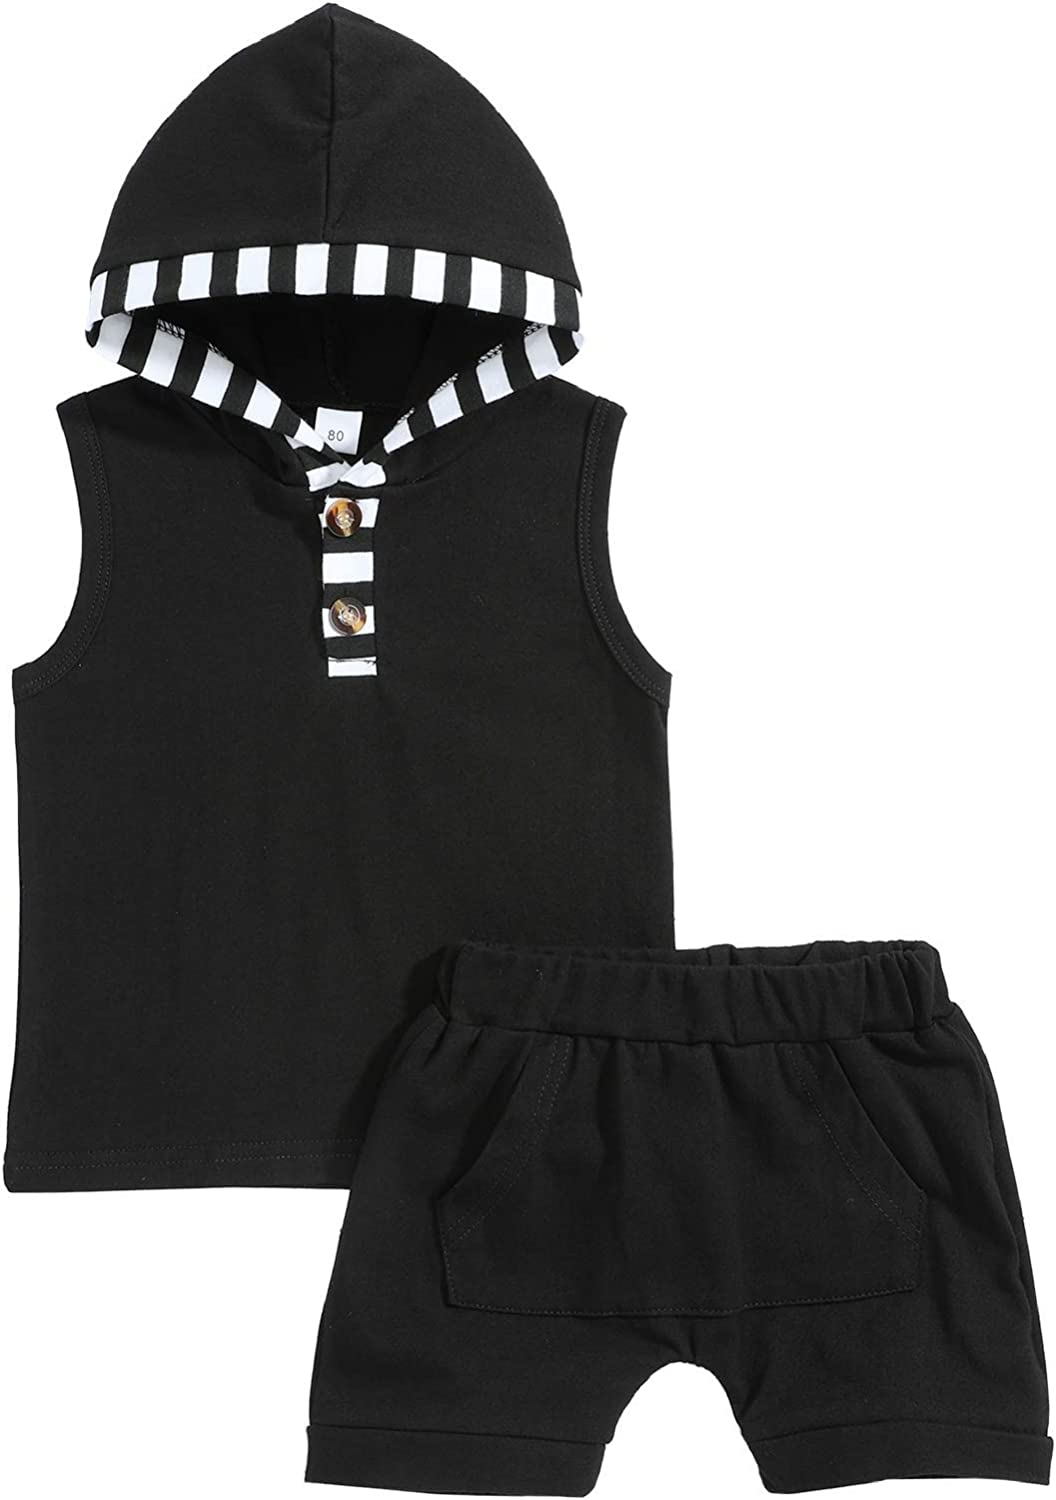 Yiner Toddler Baby Ranking TOP11 Boy Max 77% OFF Clothes Vest Tops Outfits Hoodie Striped